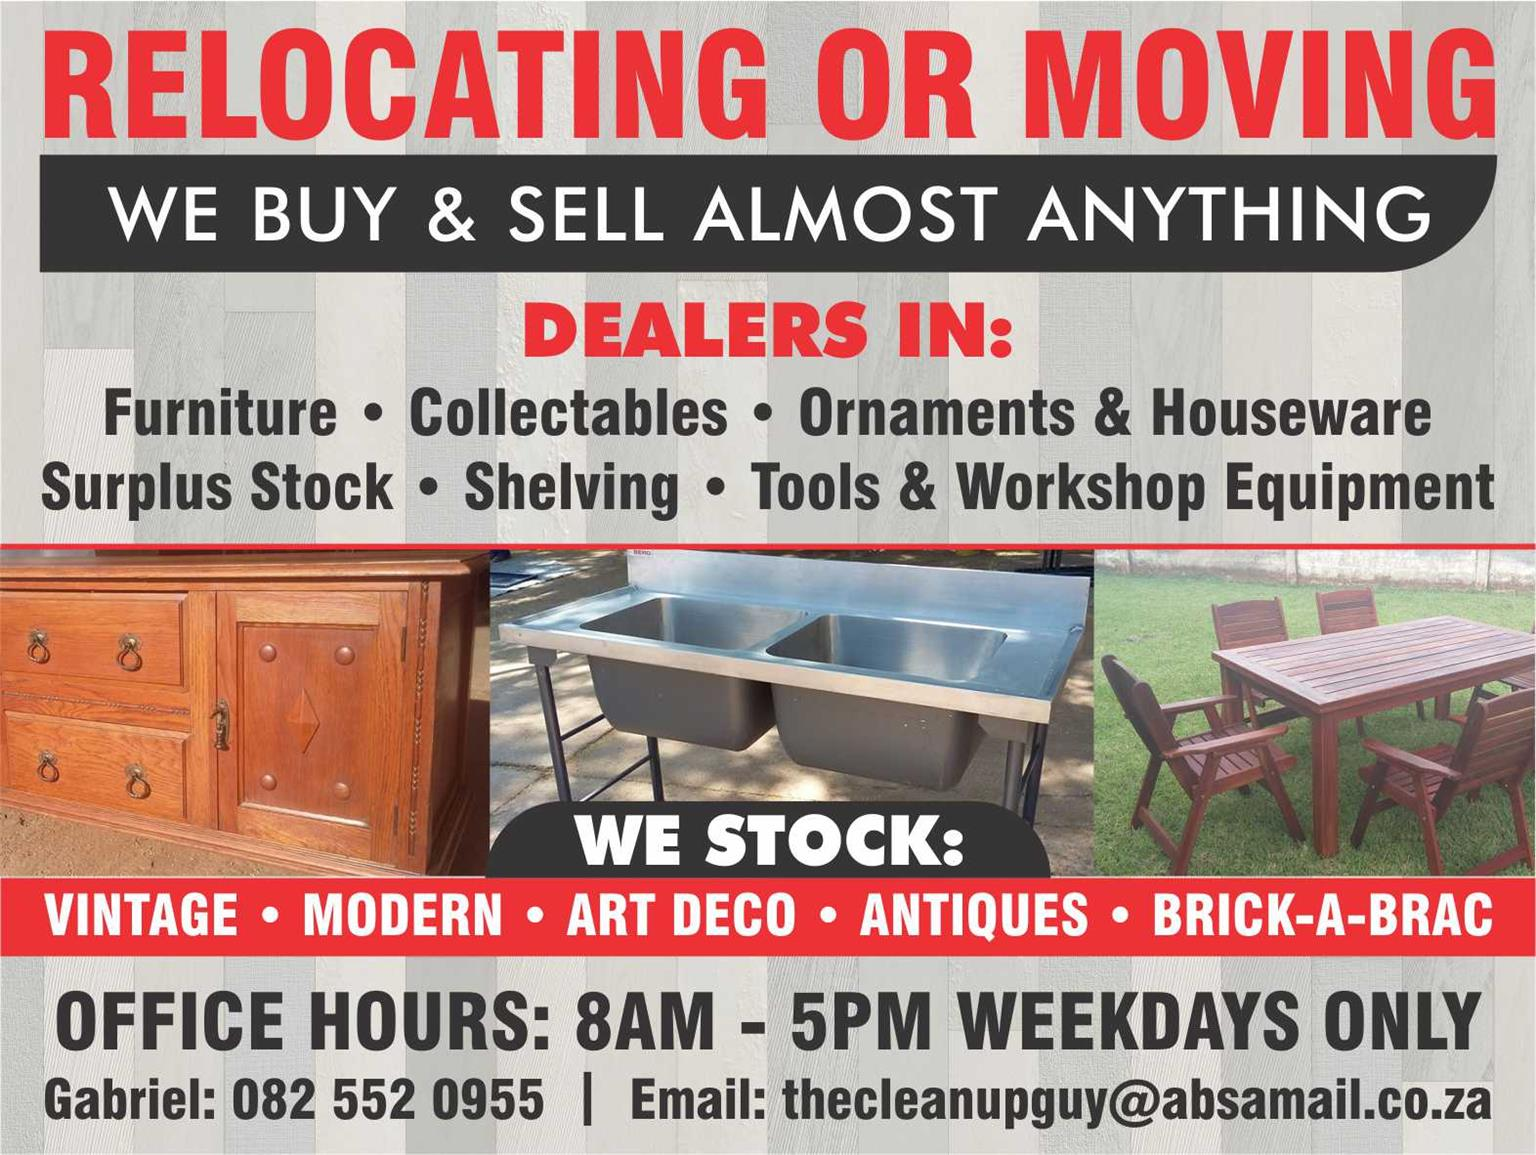 Dealers in: Furniture, Collectibles, Ornaments & House ware, Surplus stock, Shelving, Tools & Workshop Equipment